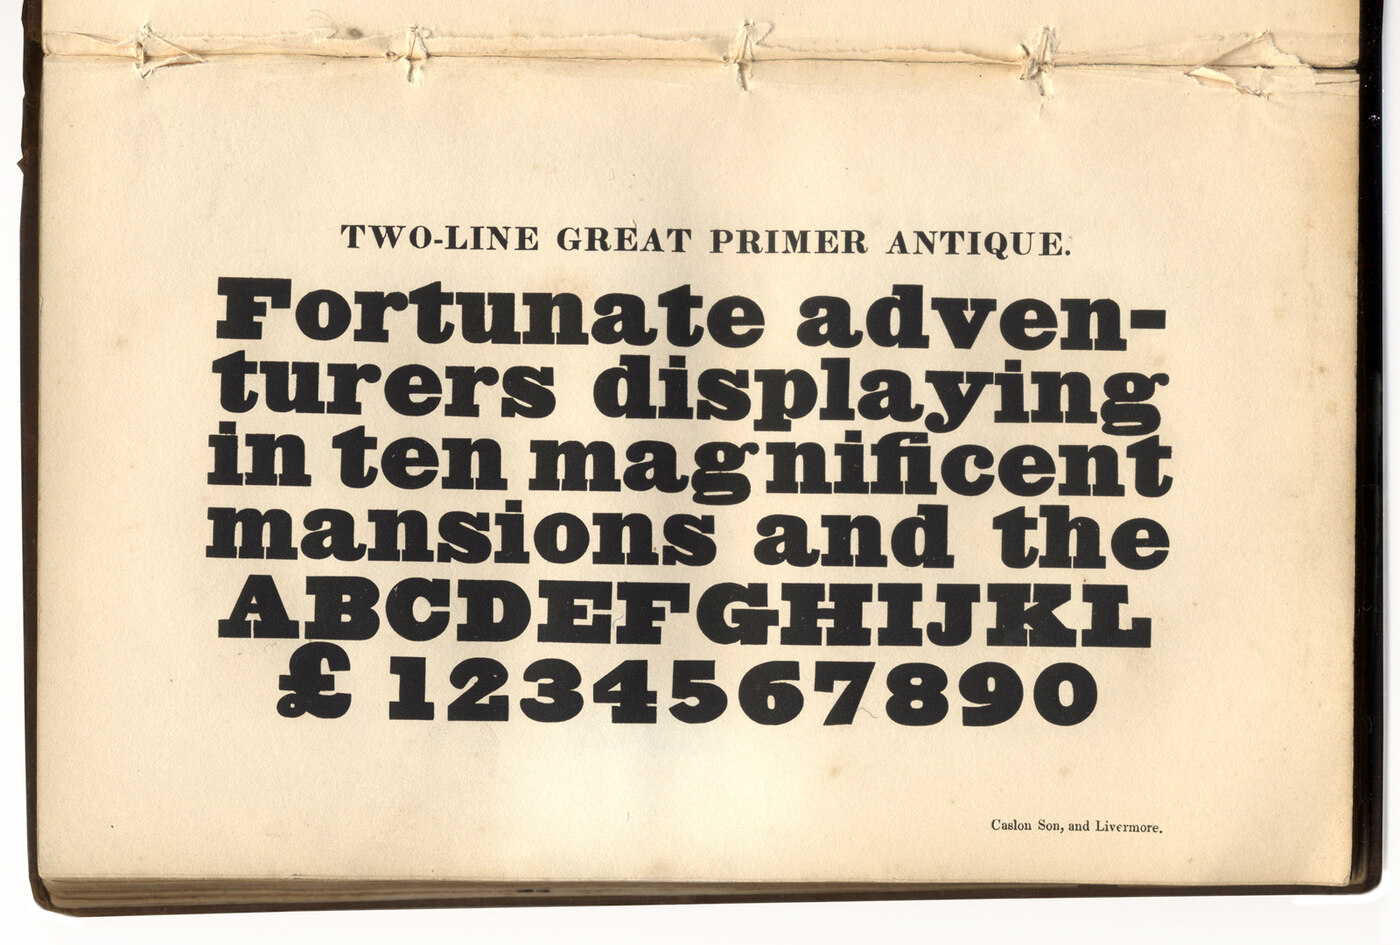 Cc.shaded.caslon2linegpantique.1842 1400 xxx q87